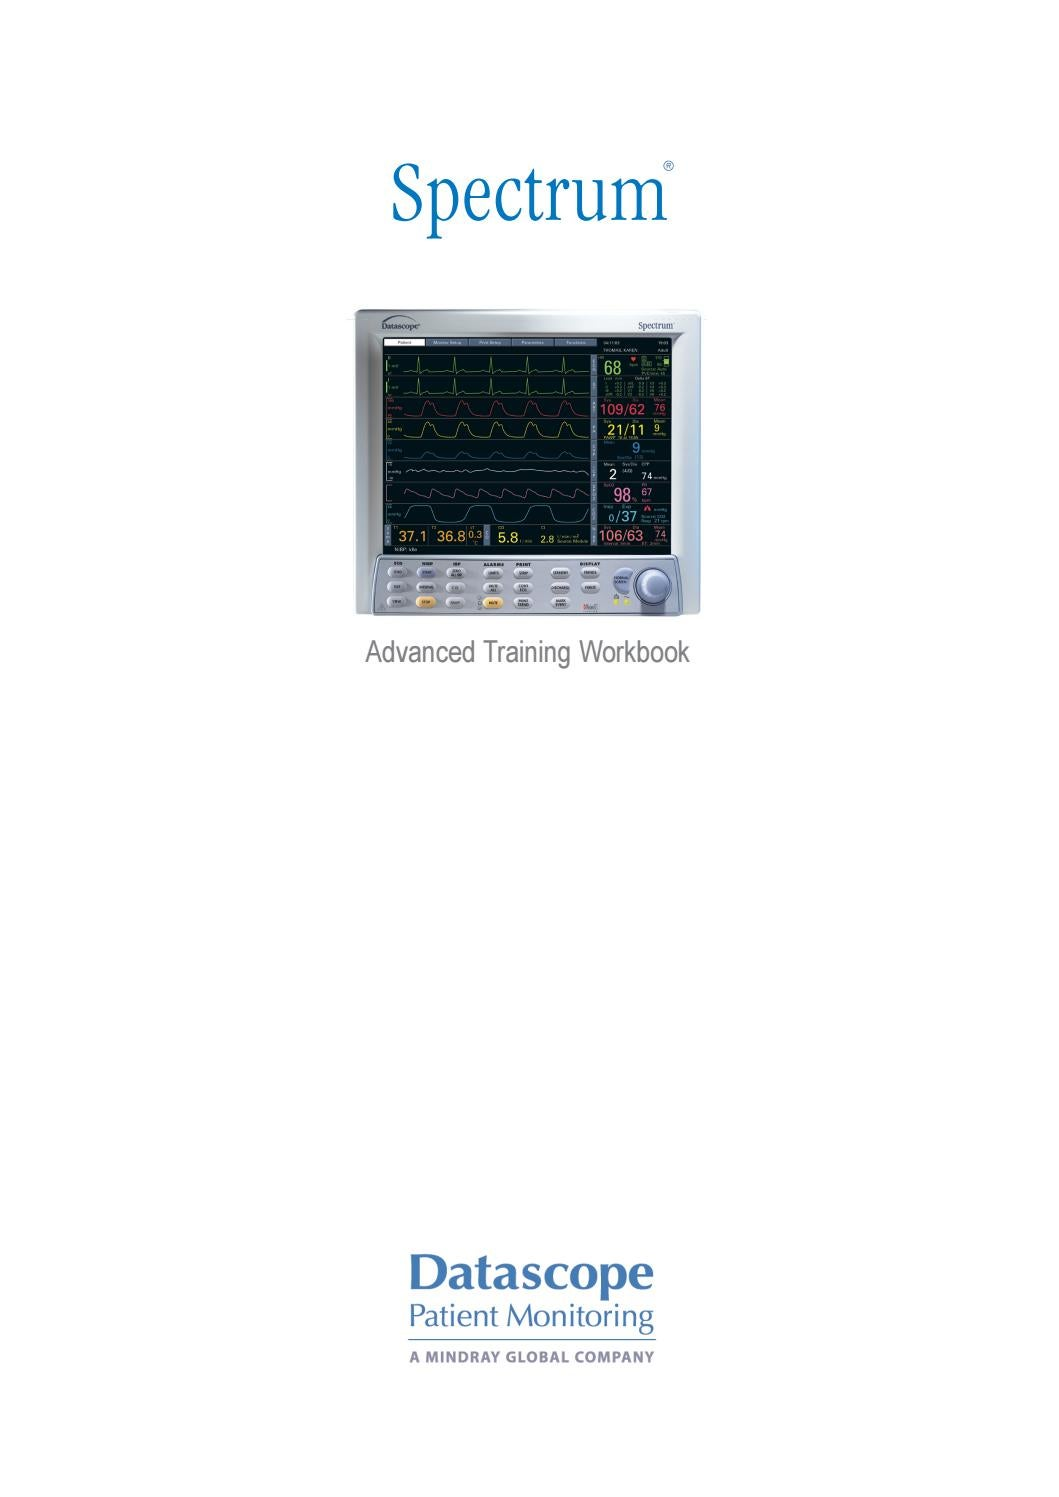 Used datascope spectrum with gas module se monitor for sale.